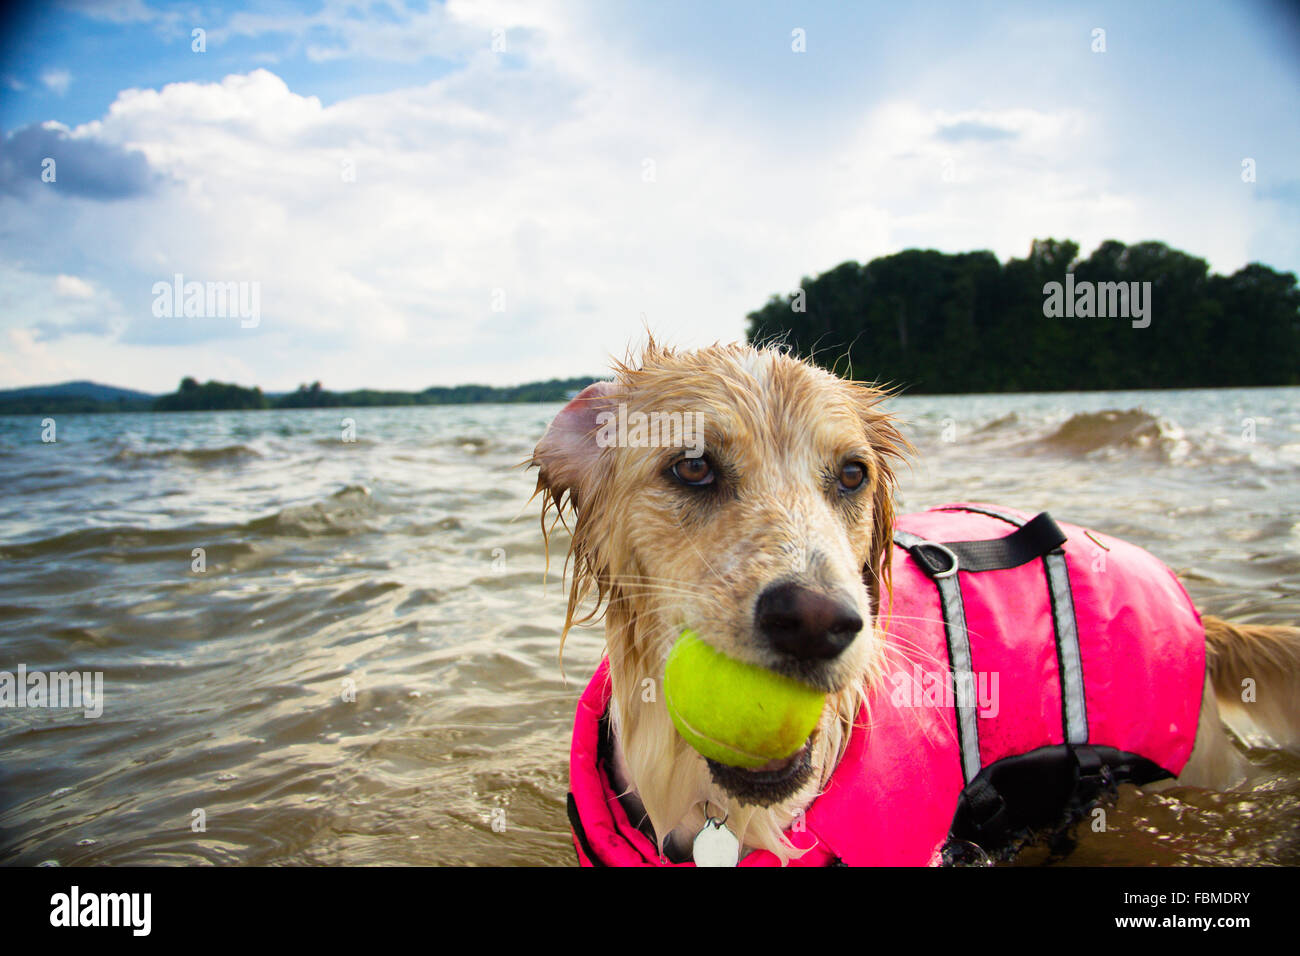 Border collie Dog playing with tennis ball in lake Stock Photo